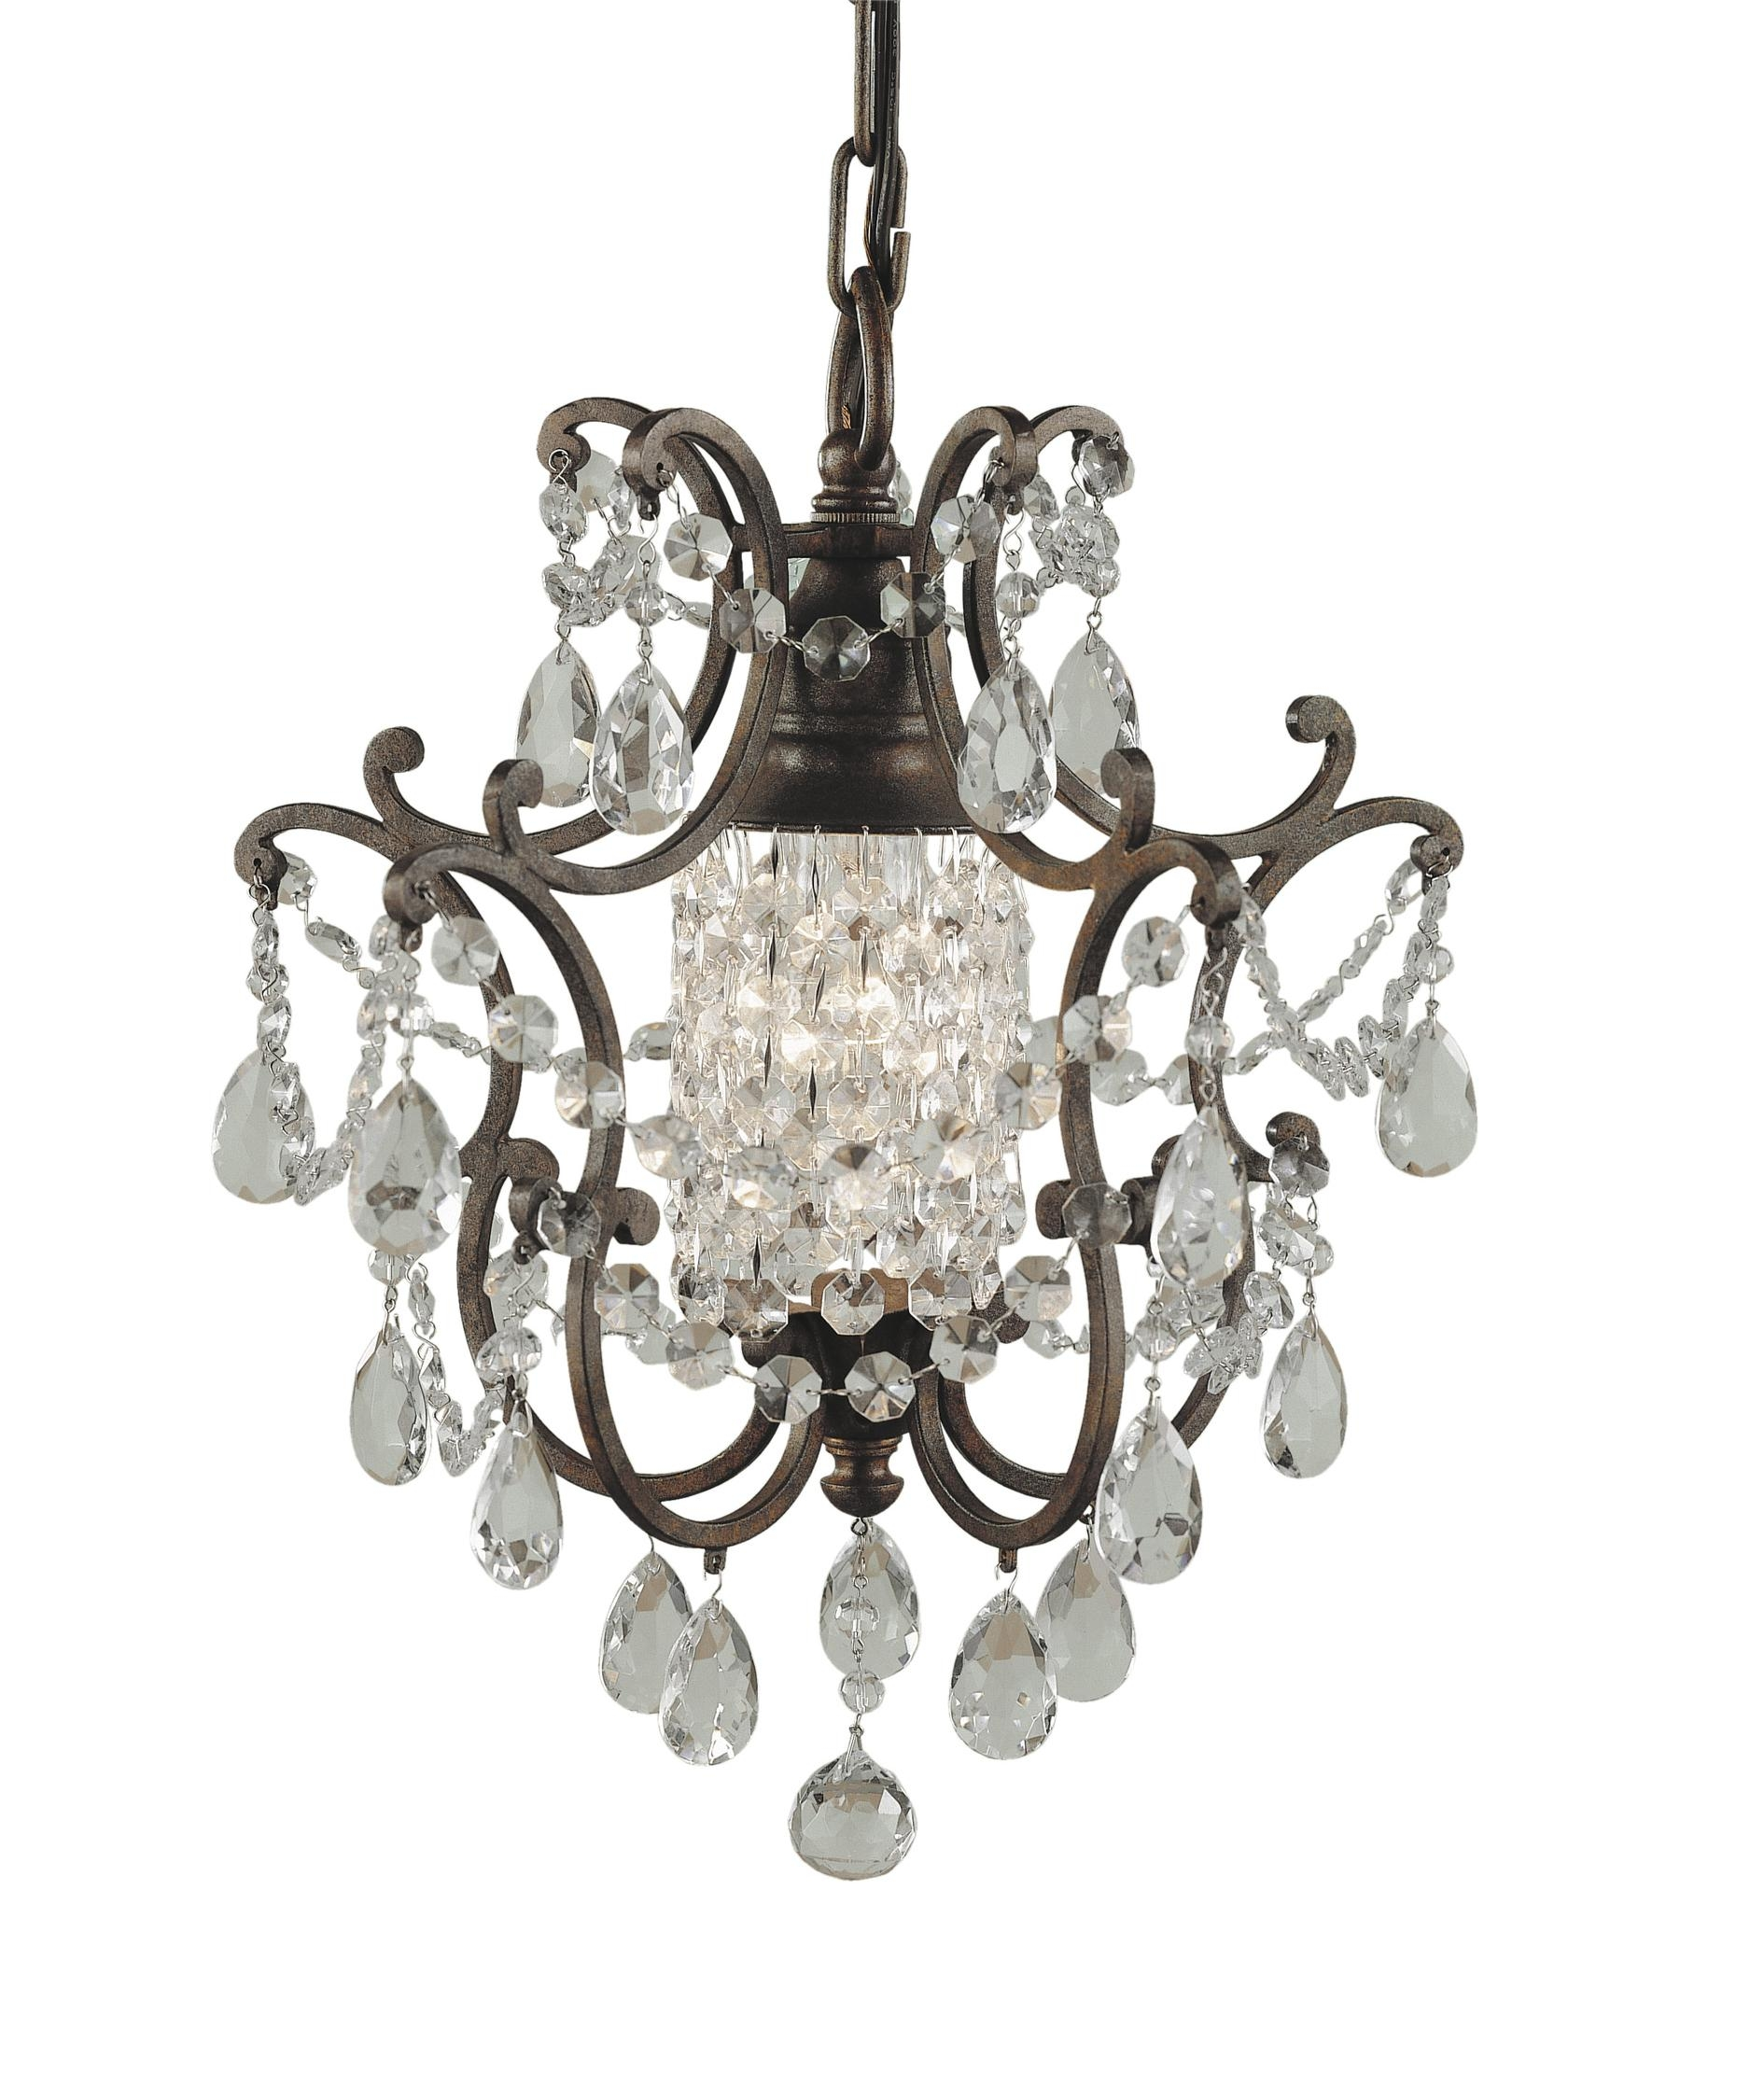 Murray Feiss F1879 1 Maison De Ville 11 Inch Wide 1 Light Mini With Feiss Chandeliers (Image 19 of 25)